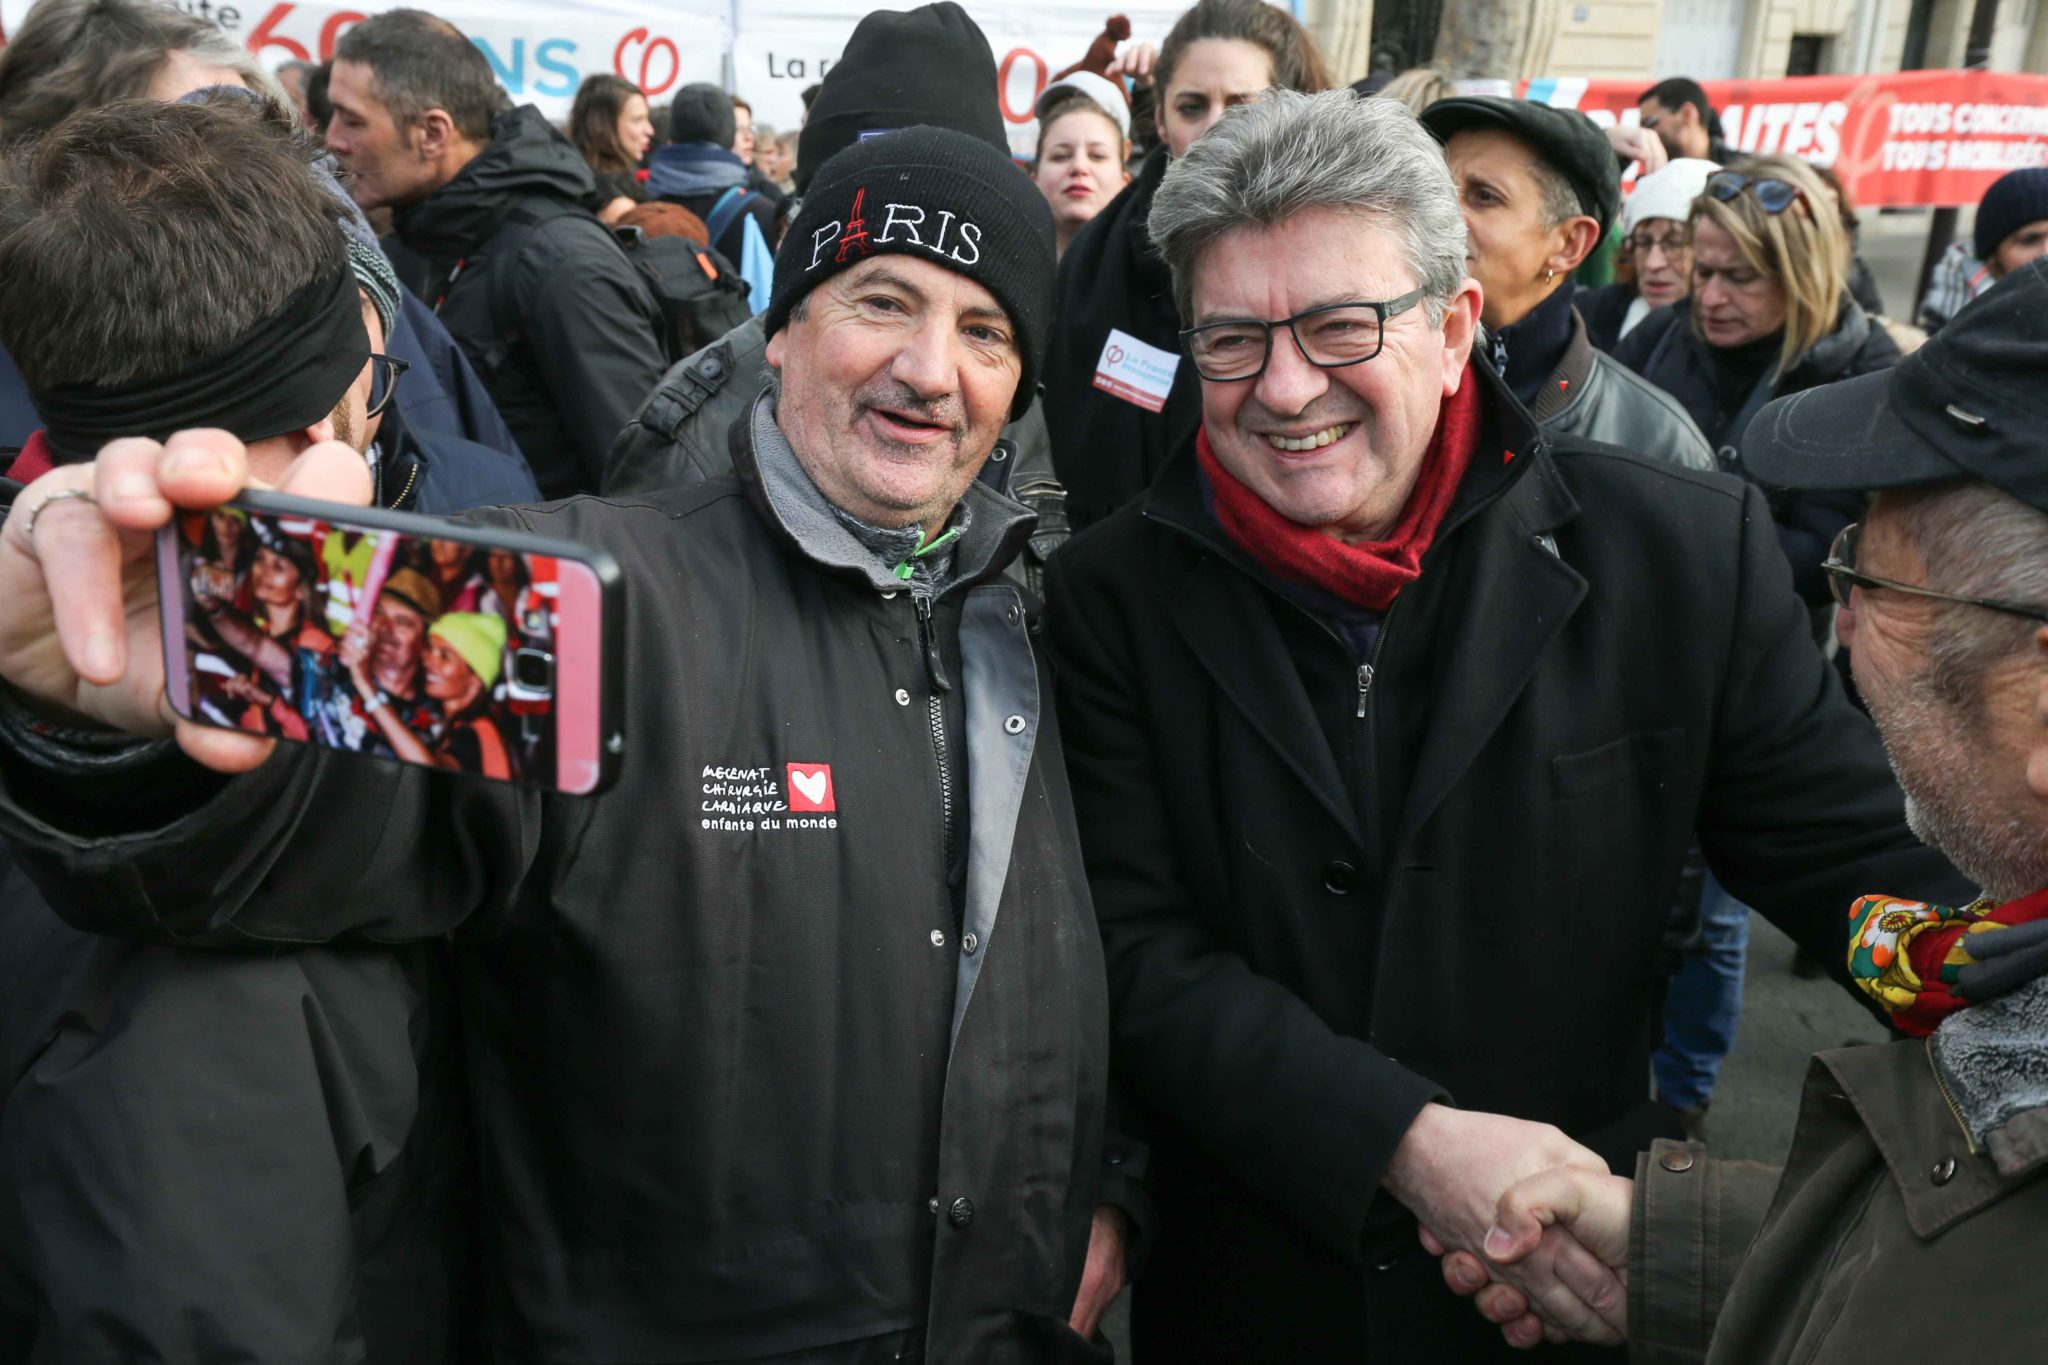 France's leftist party La France Insoumise (LFI) president Jean-Luc Melenchon (R) talks with demonstrators during a march in Paris on December 10, 2019 on a sixth day of a strike of public transport operators SNCF and RATP employees over French government'